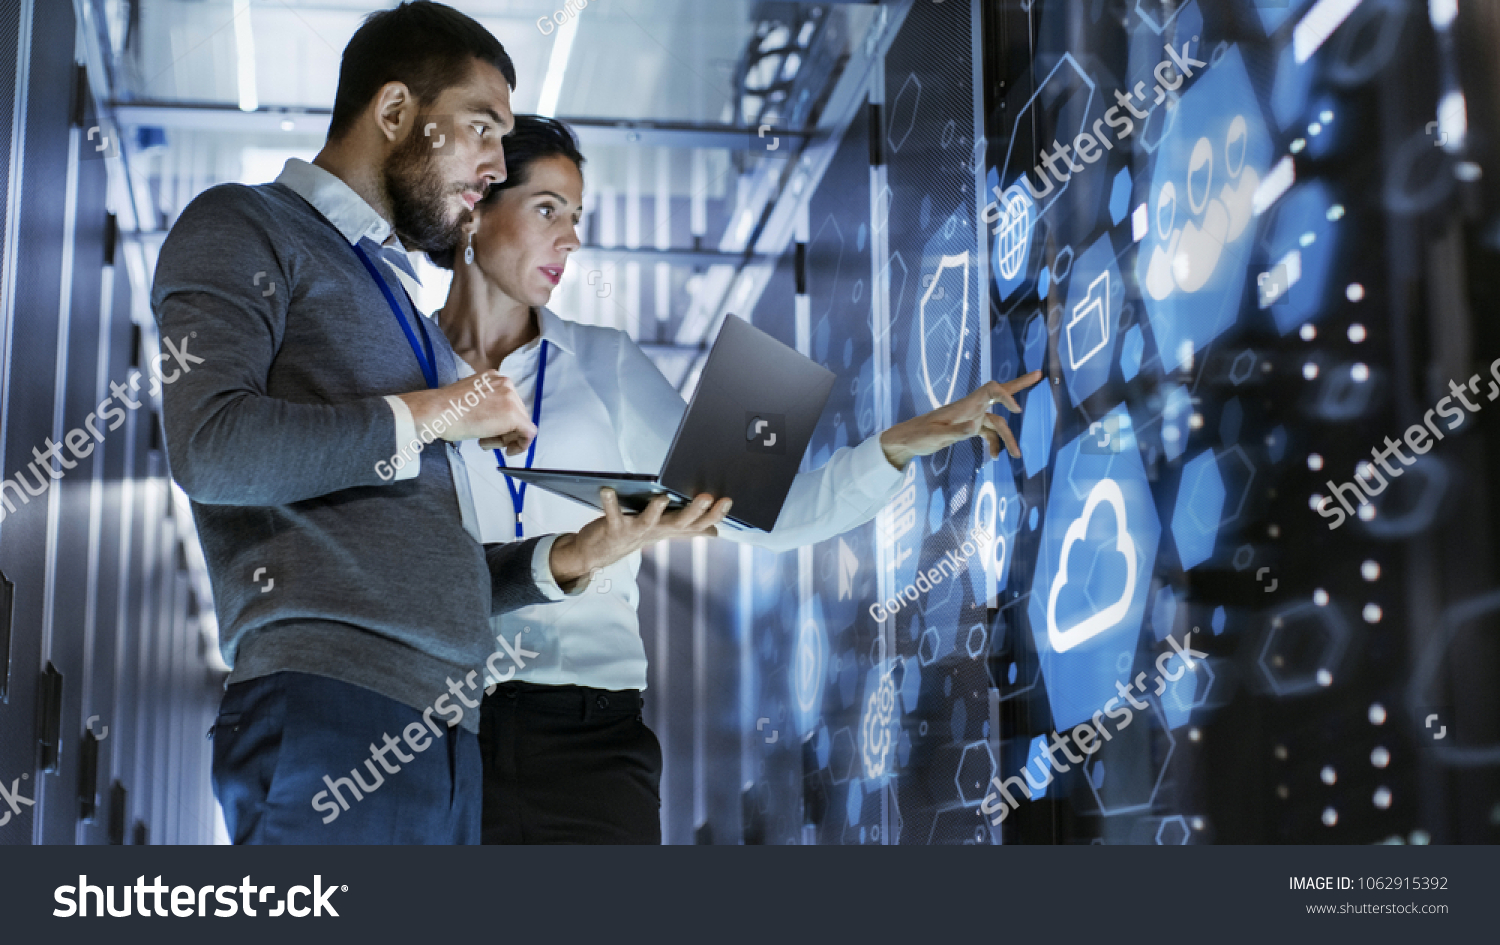 Male IT Specialist Holds Laptop and Discusses Work with Female Server Technician. They're Standing in Data Center, Rack Server Cabinet with Cloud Server Icon and Visualization. #1062915392